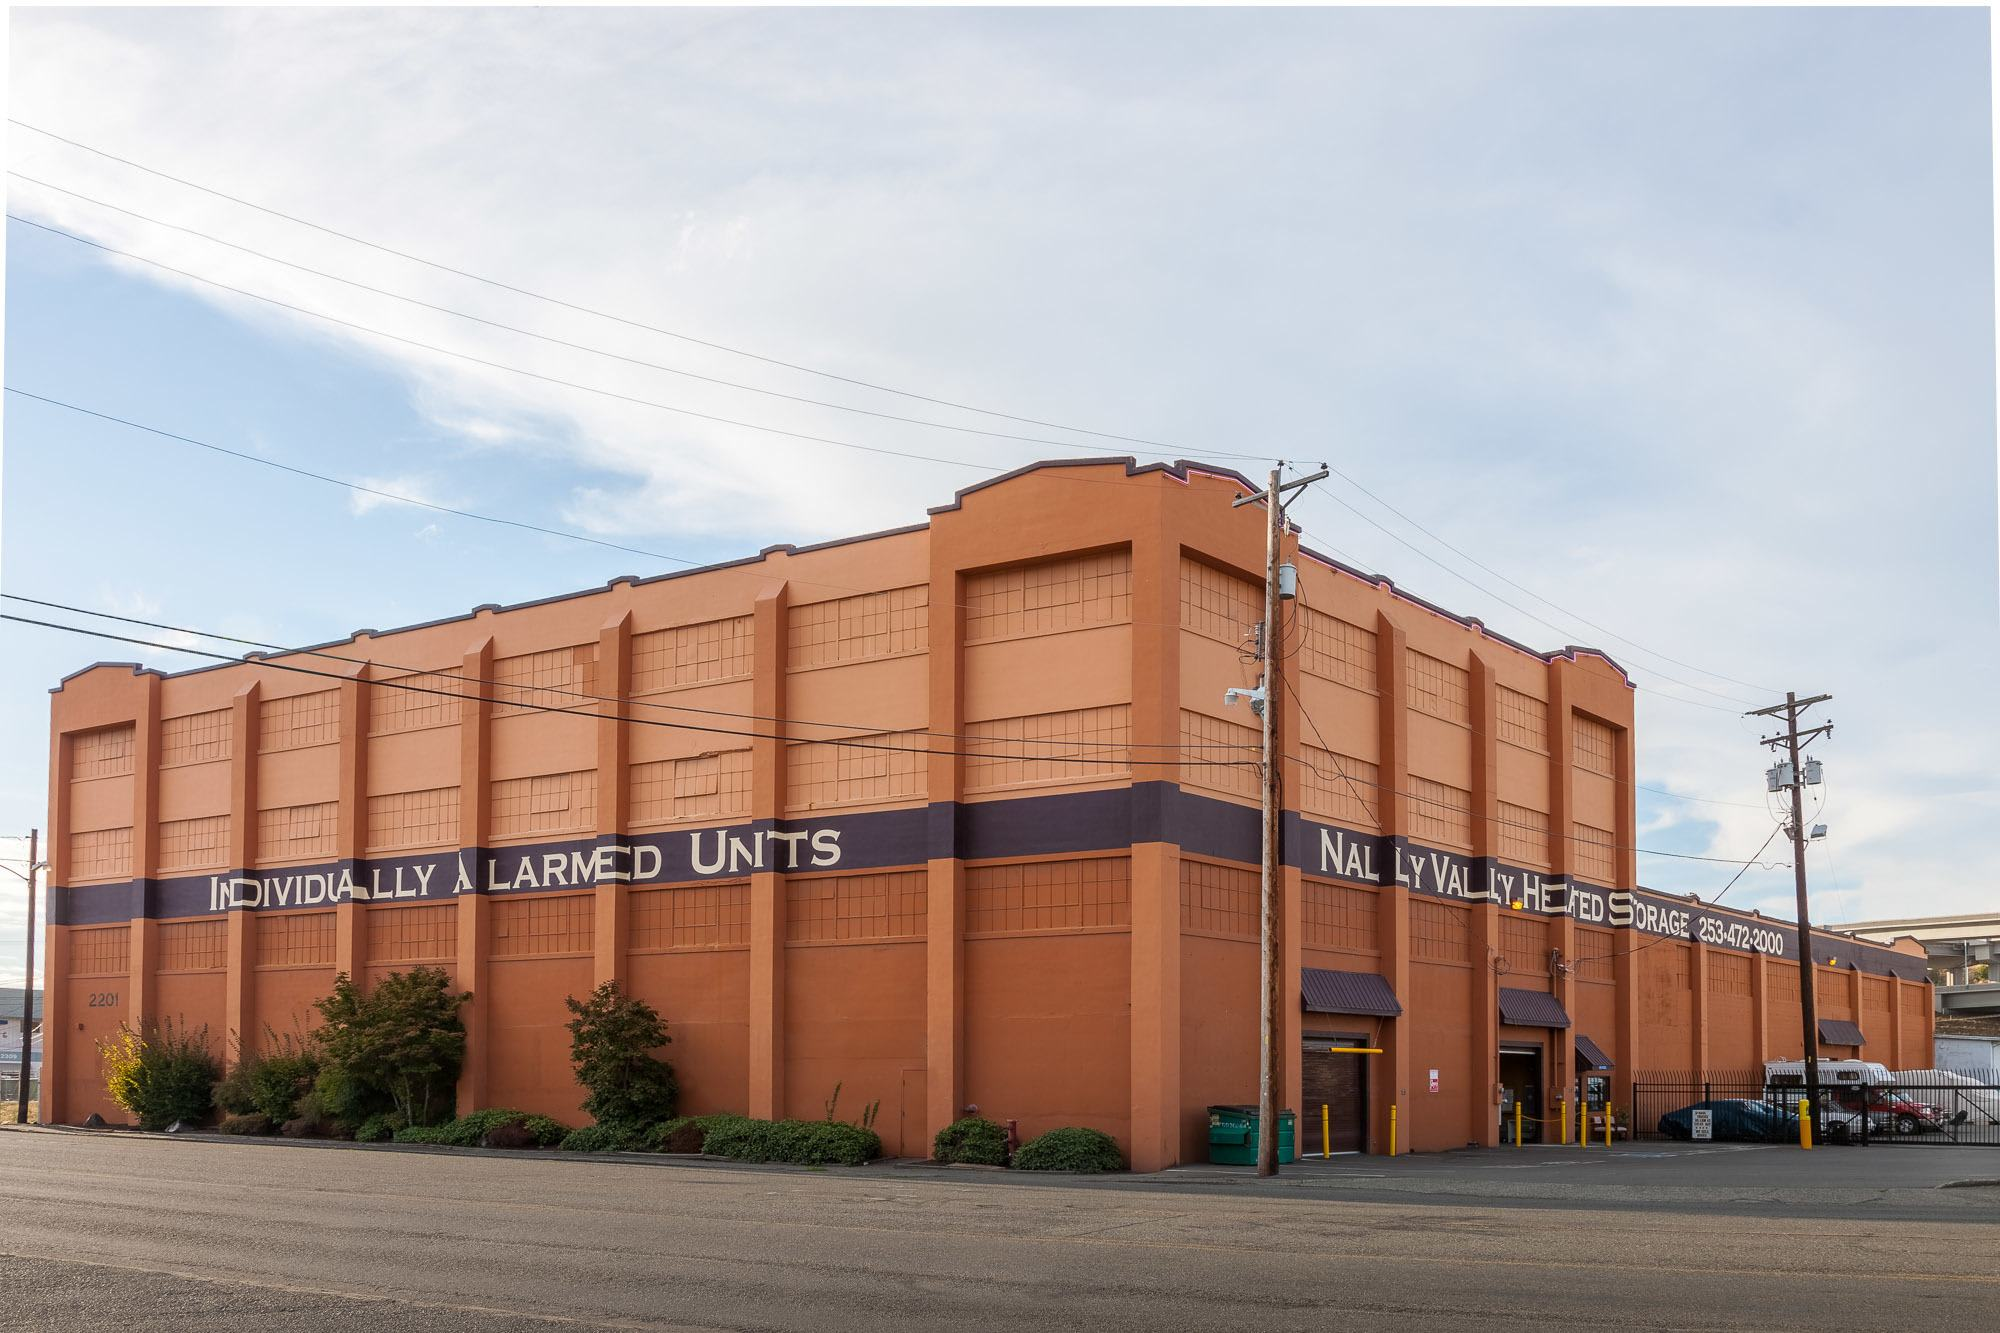 Easily recognizable exterior of self storage in Tacoma, Washington